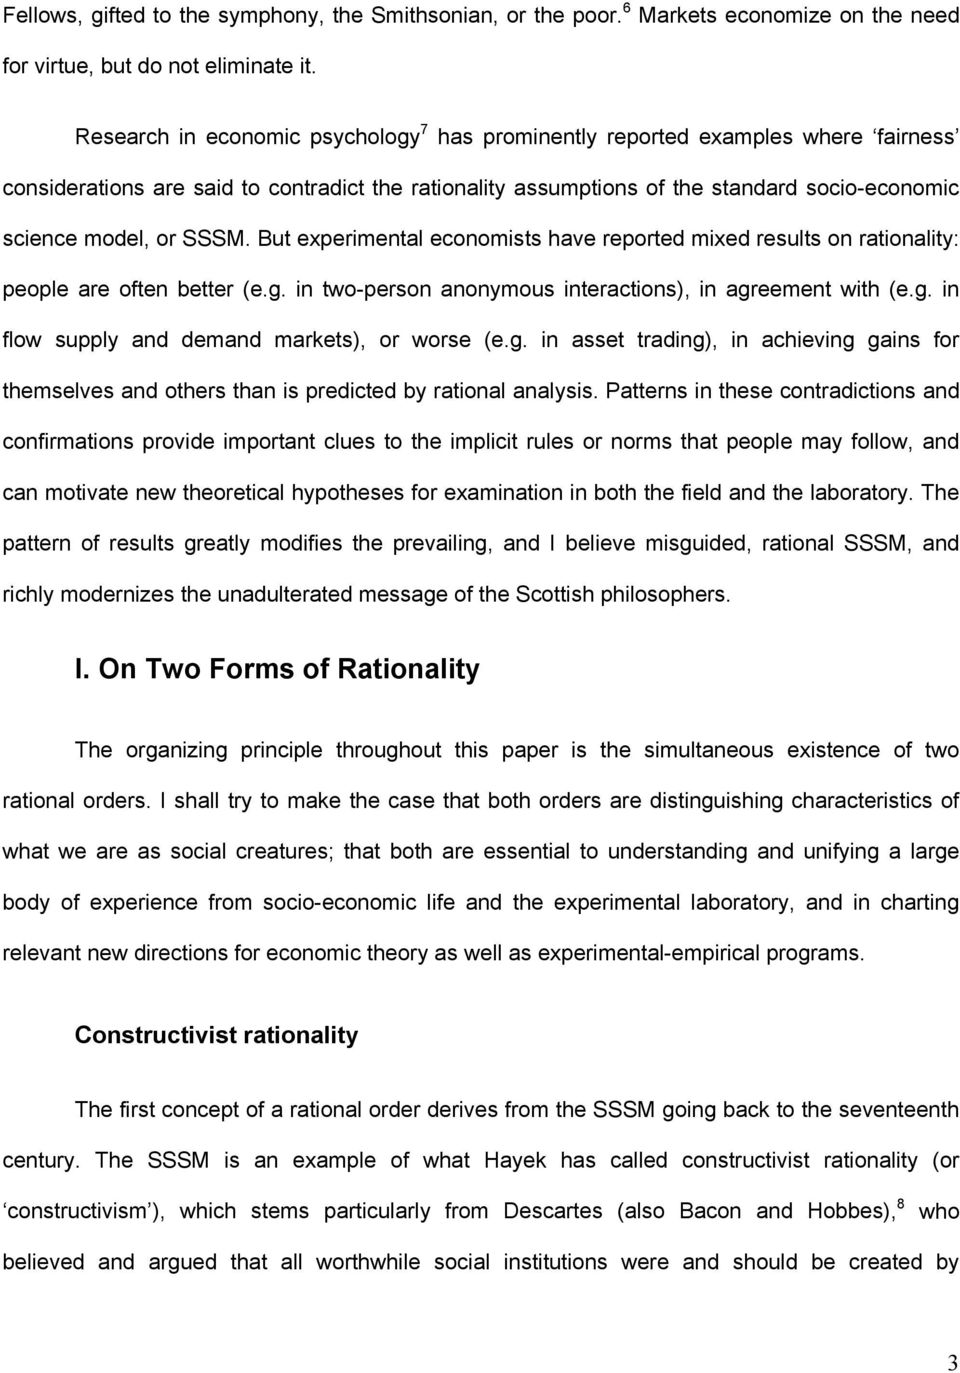 SSSM. But experimental economists have reported mixed results on rationality: people are often better (e.g. in two-person anonymous interactions), in agreement with (e.g. in flow supply and demand markets), or worse (e.